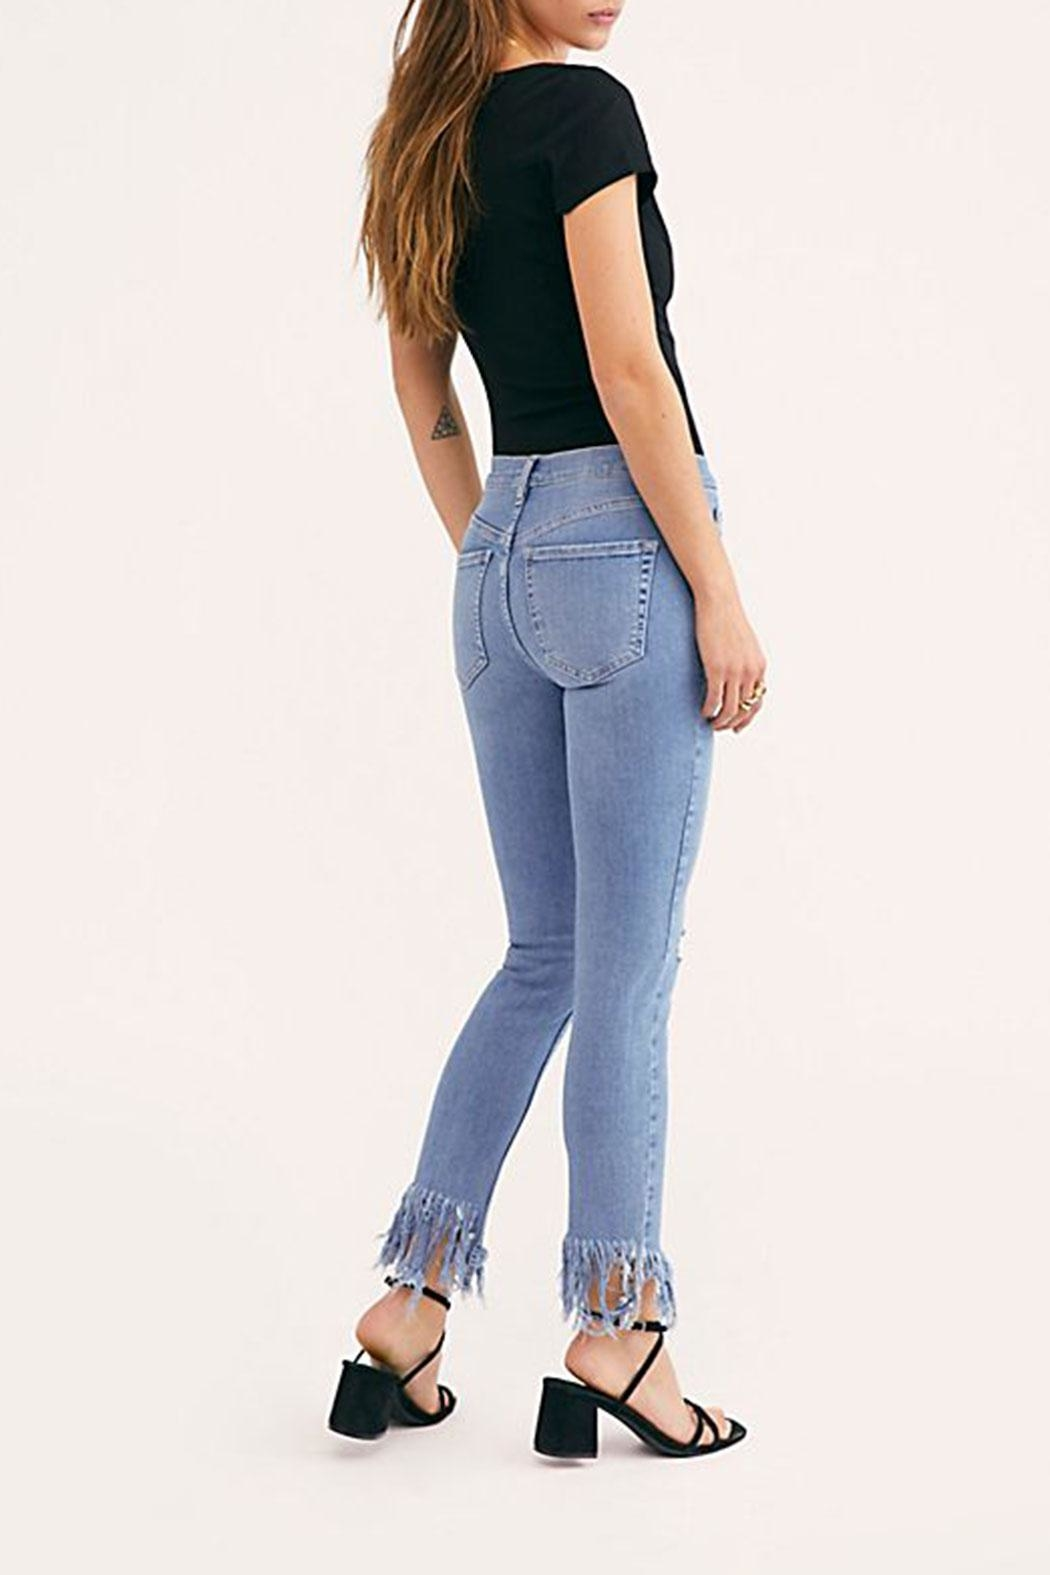 Free People Great-Heights Frayed Skinny-Jean - Side Cropped Image